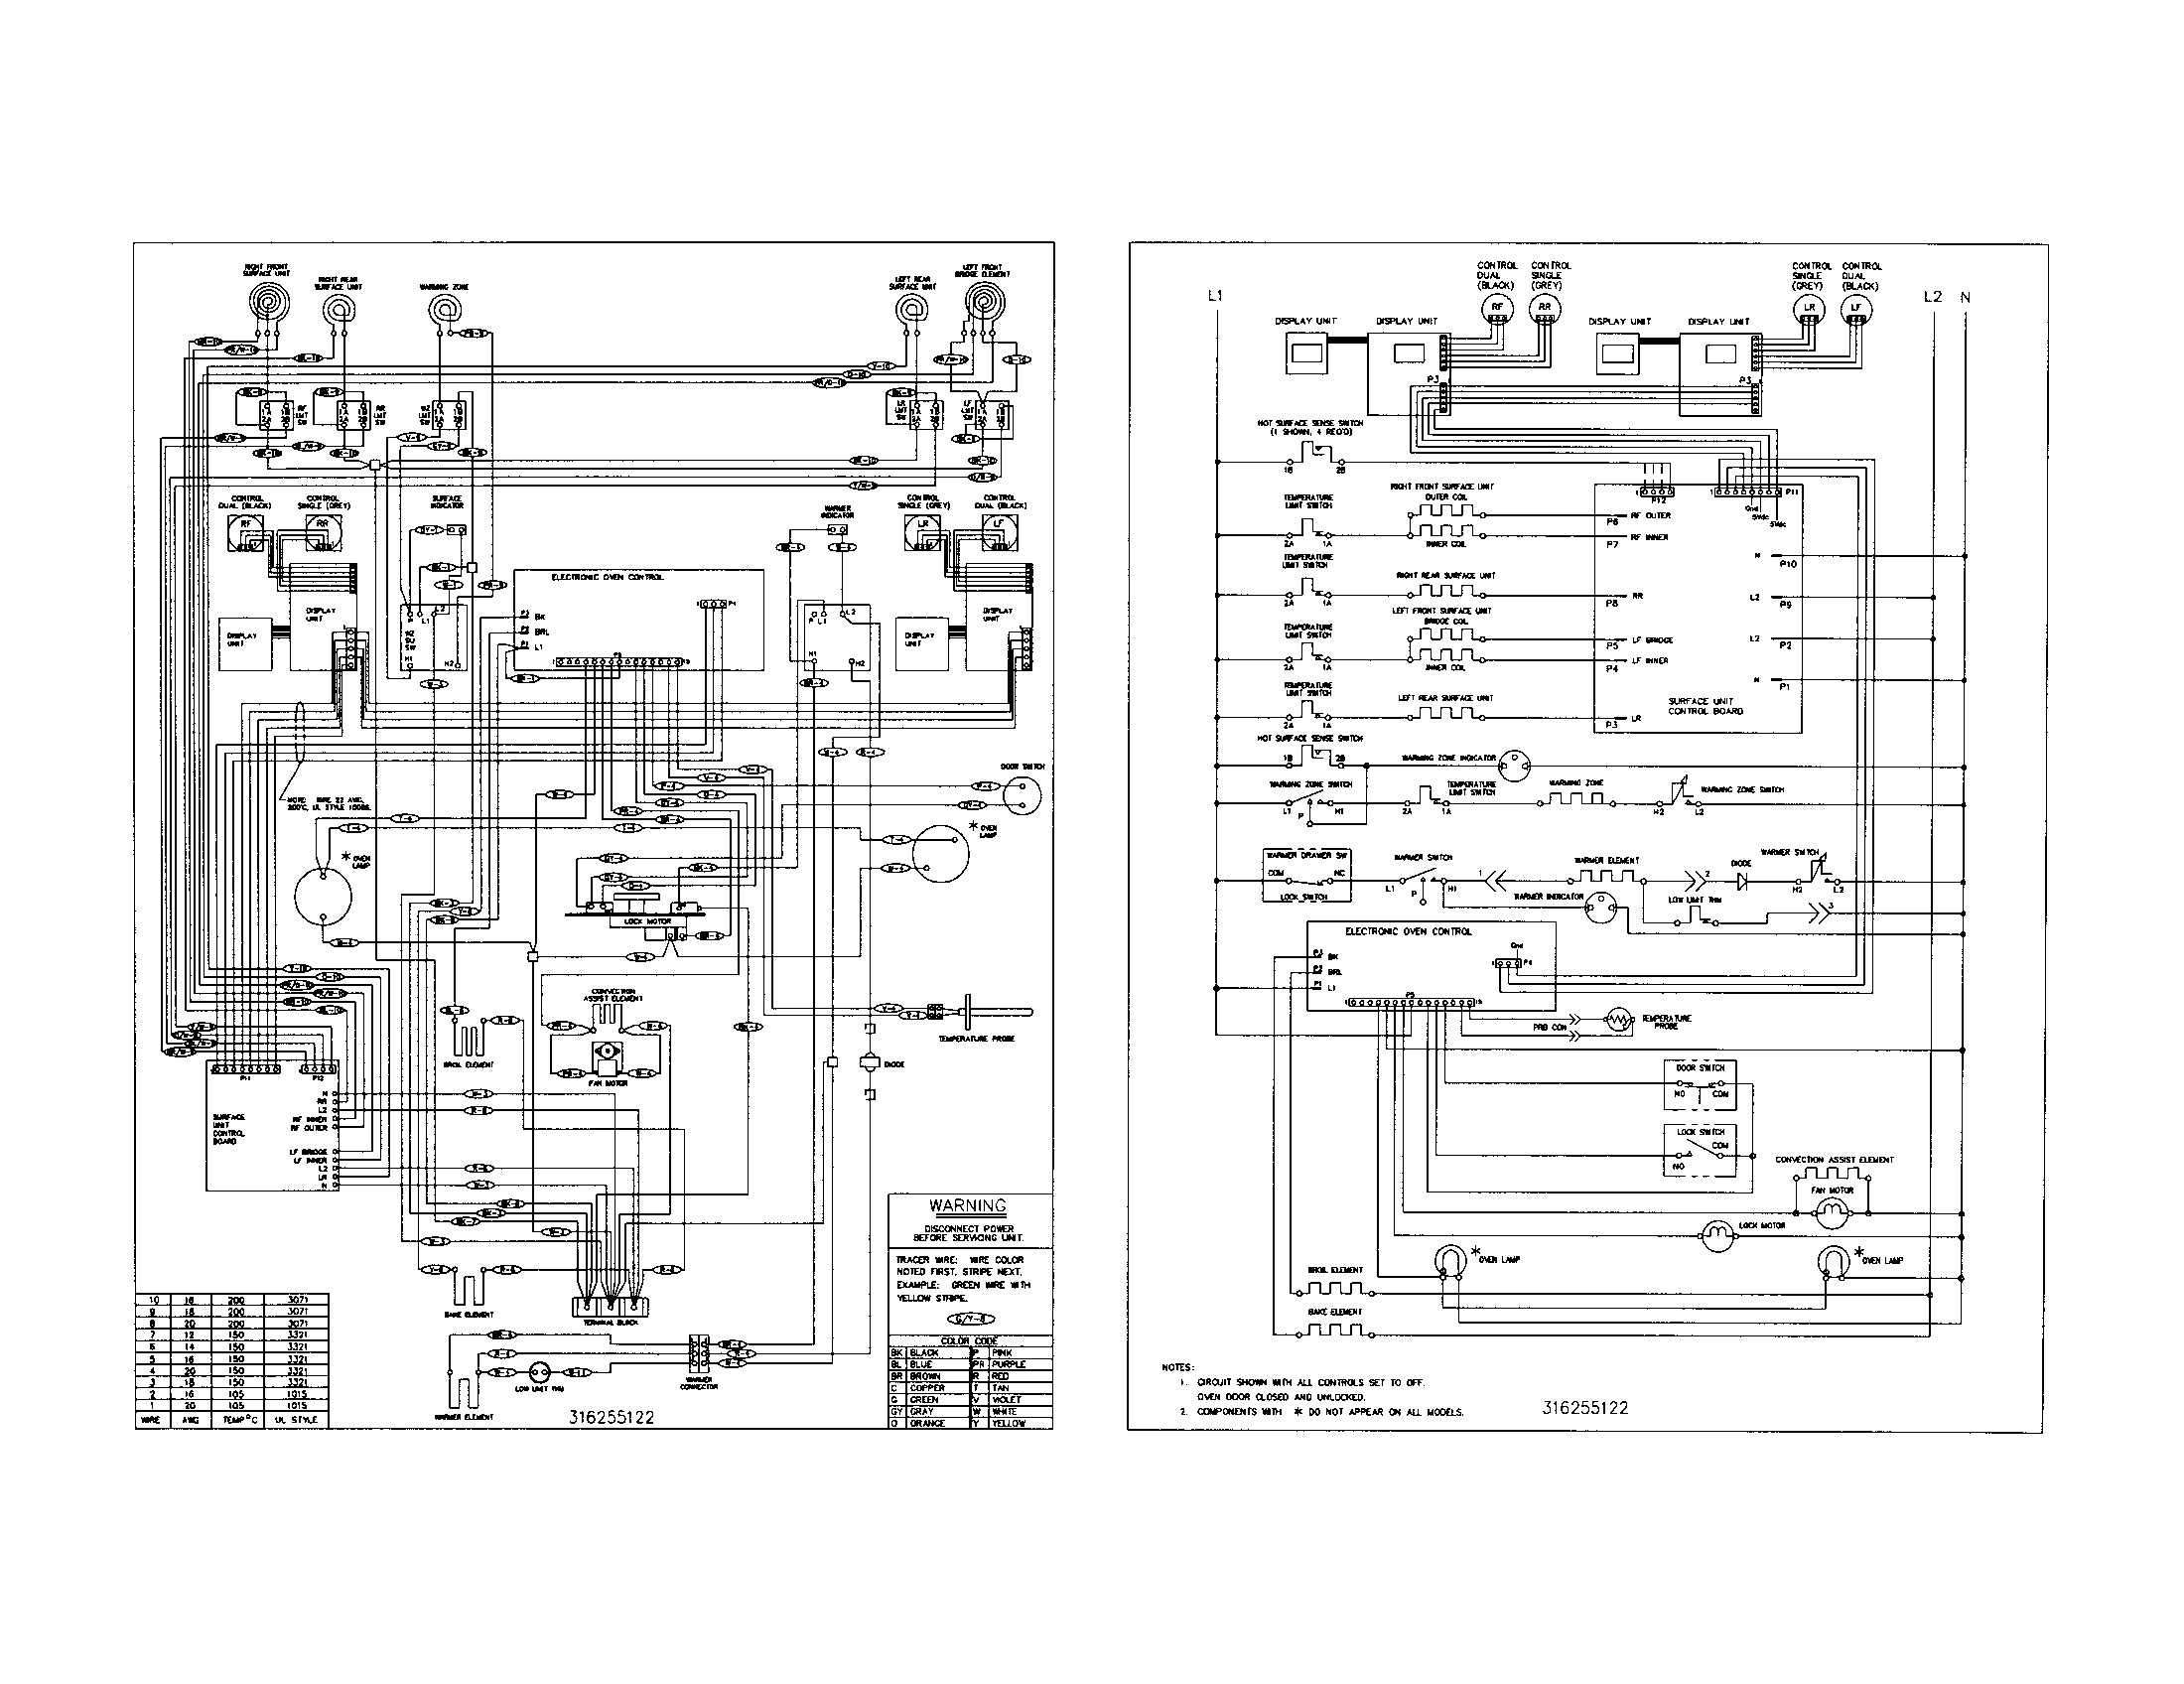 Kenmore Electric Oven Wiring Diagram - Wiring Diagrams Lol on